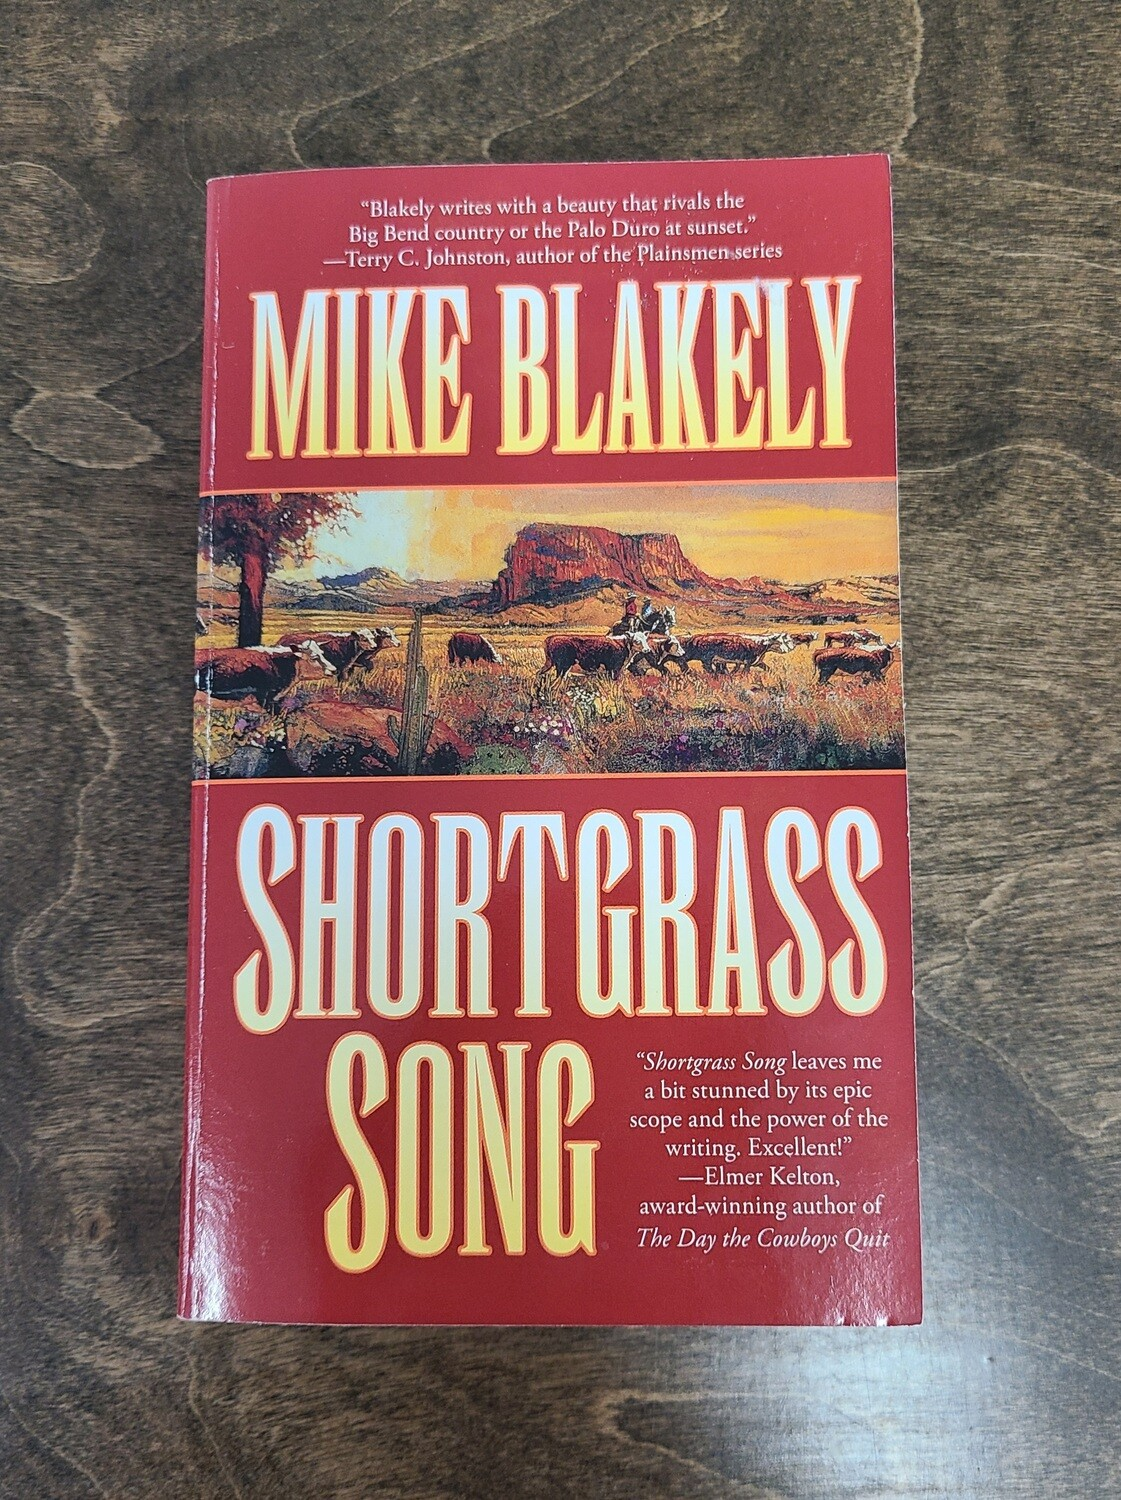 Shortgrass Song by Mike Blakely